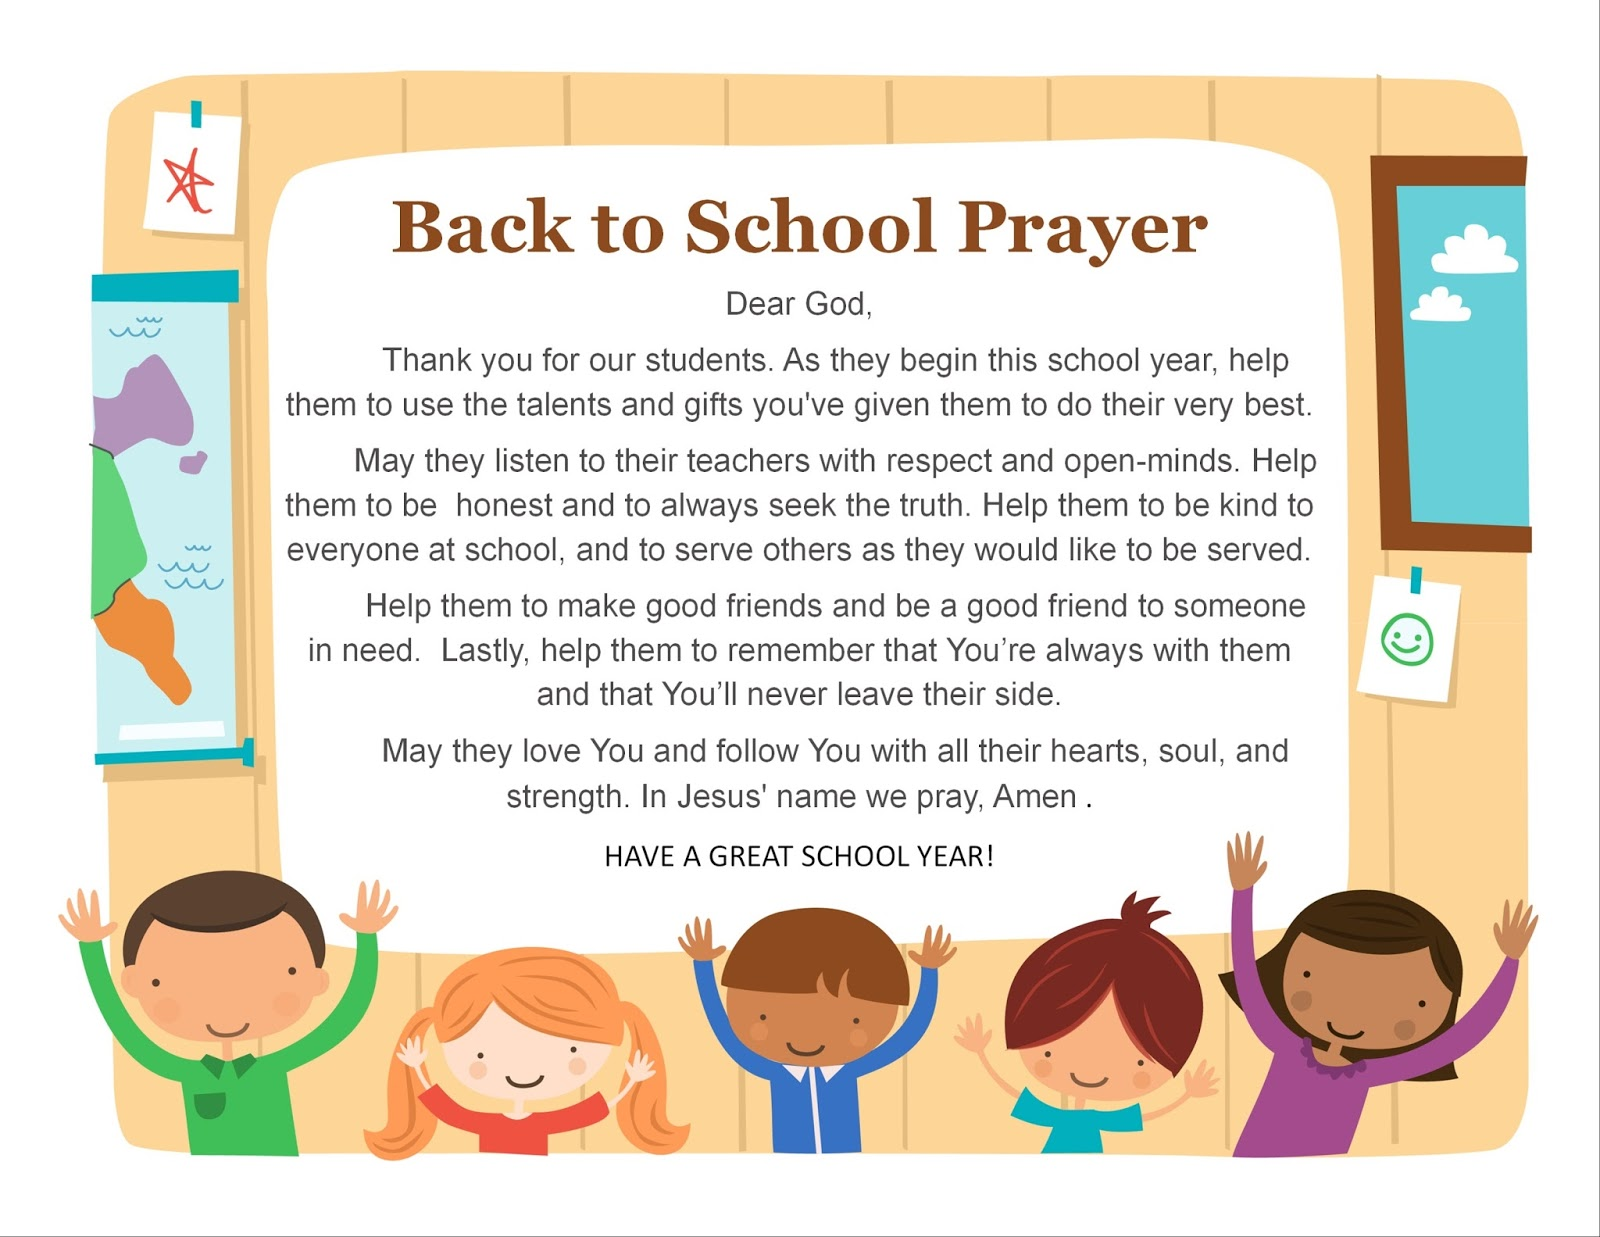 St. Clare of Assisi School: Back to School Prayer